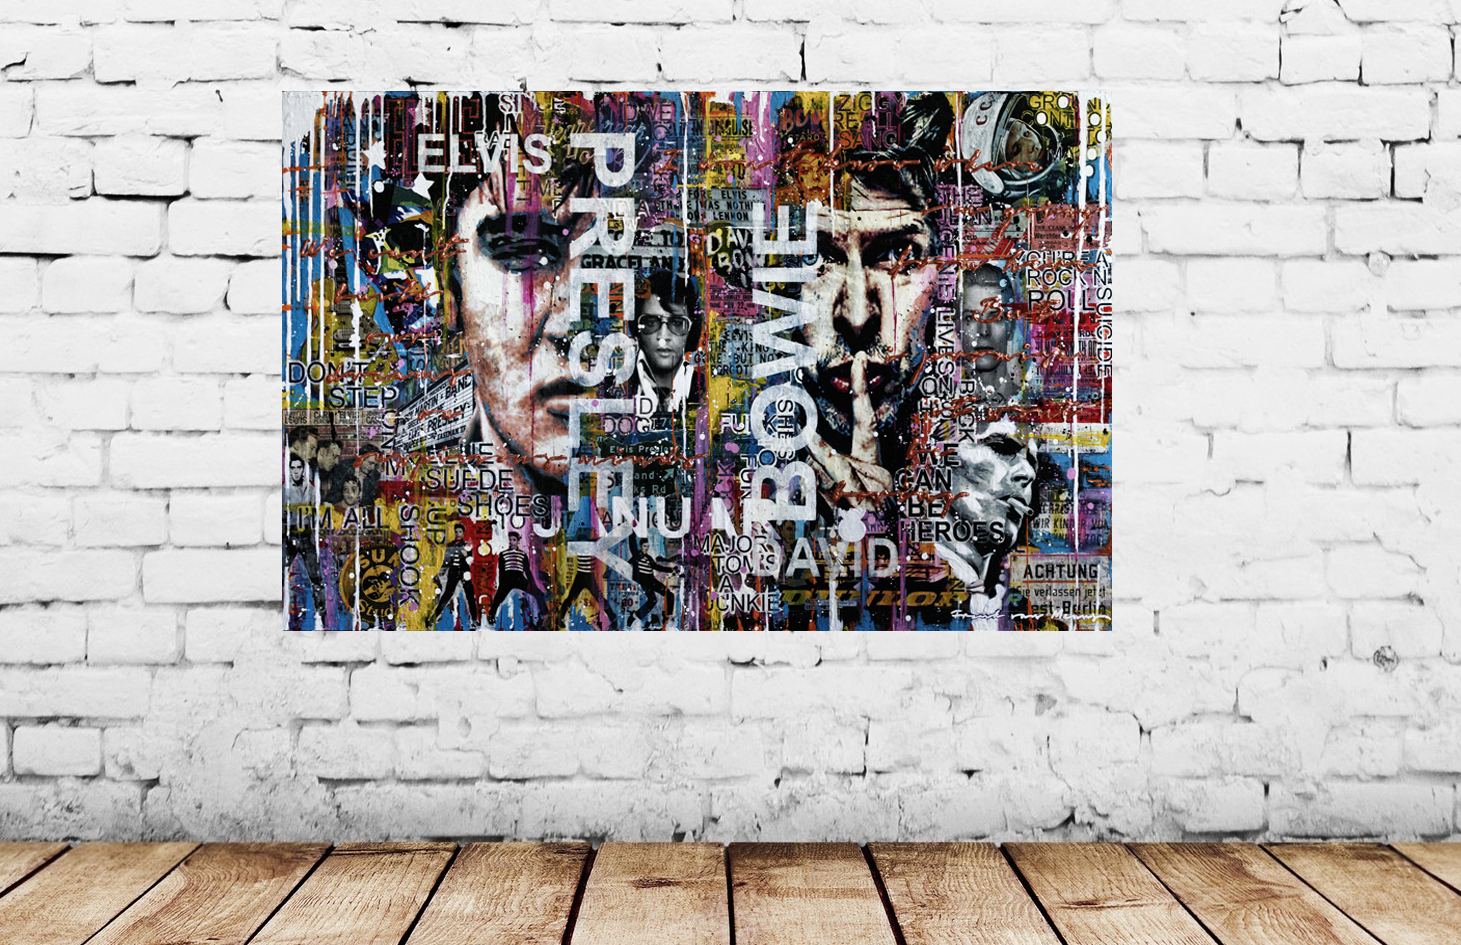 Mixed media artwork with faces of Elvis Presley and David Bowie on a white wall